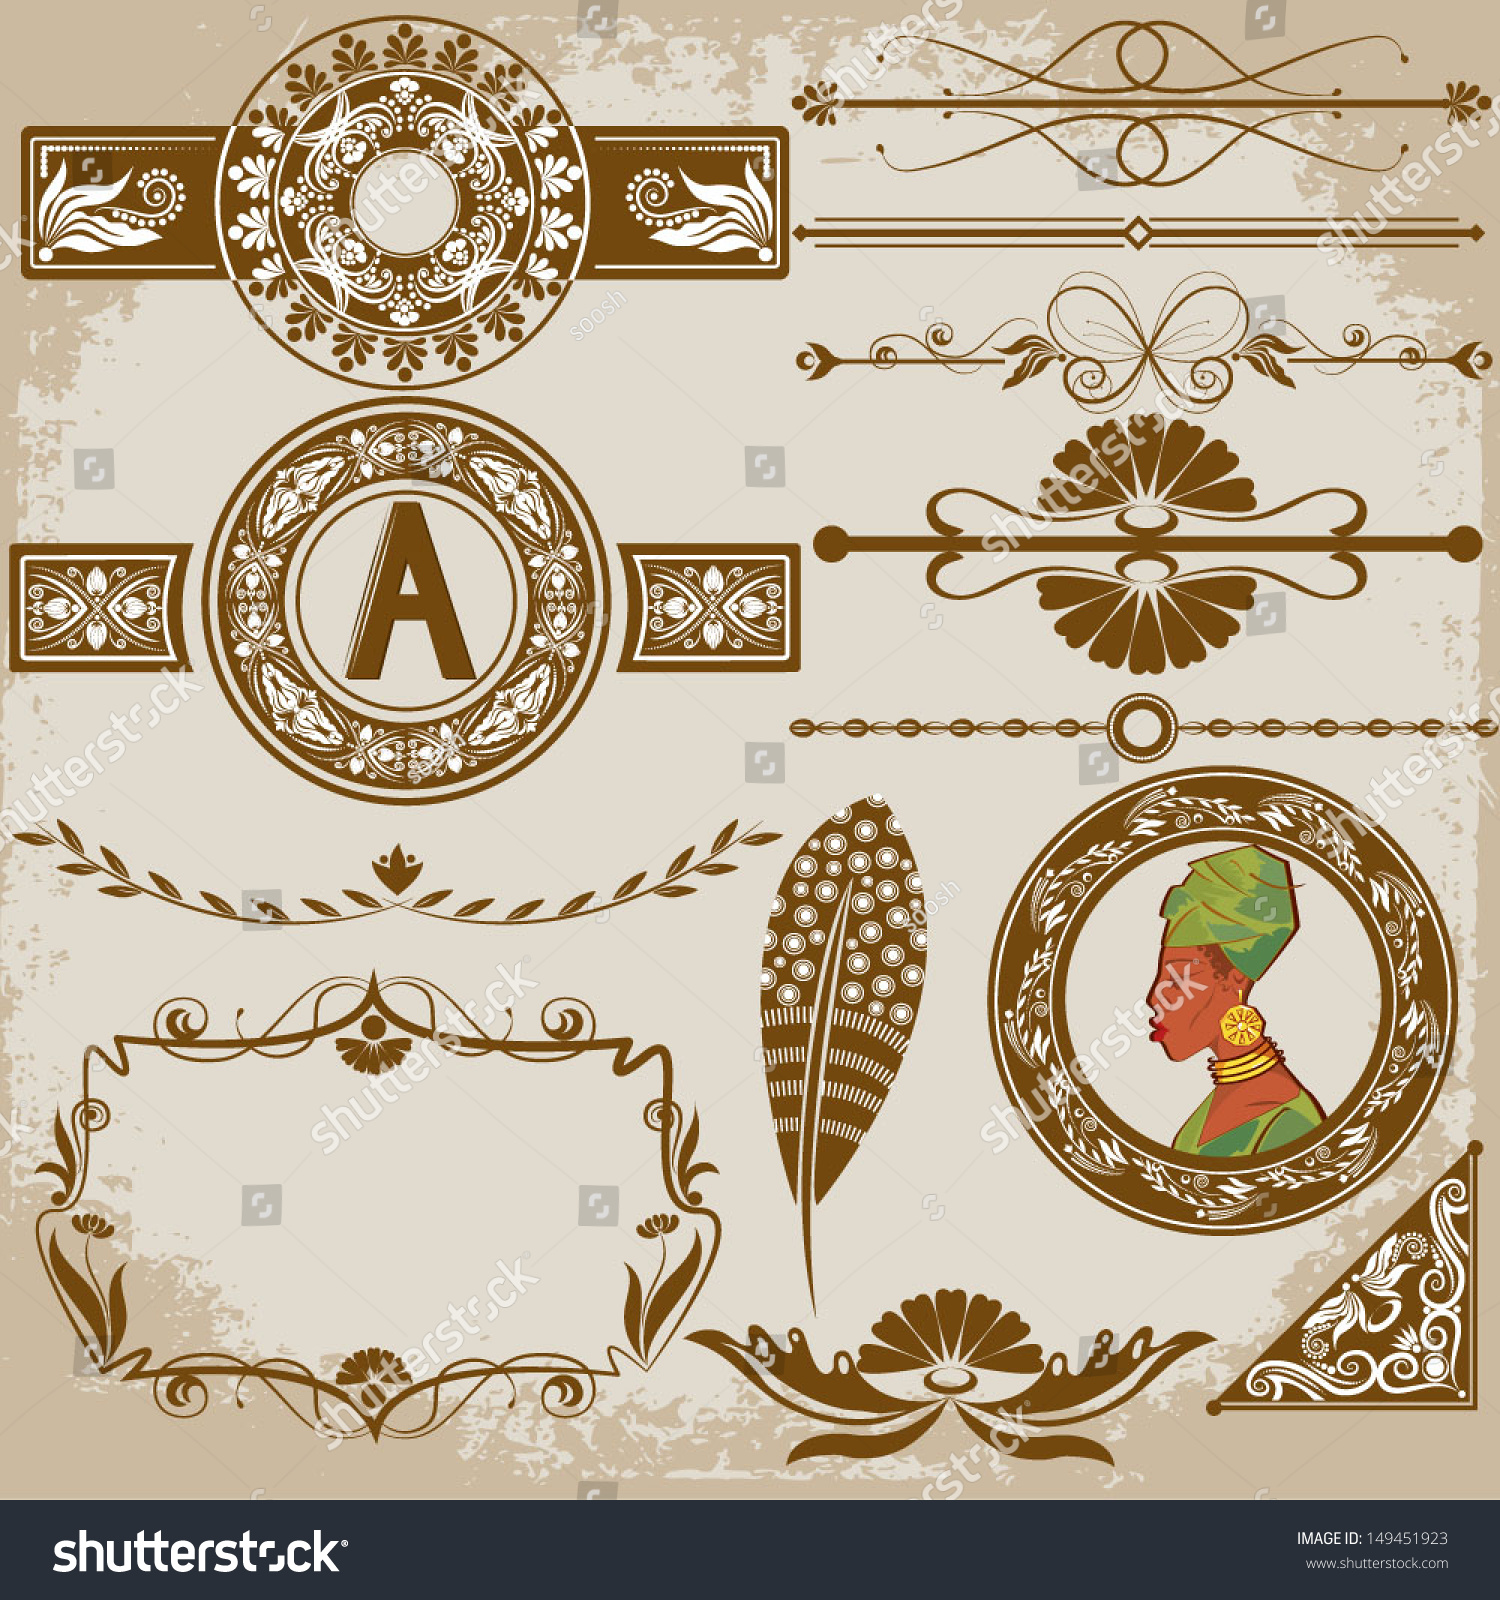 floral ornaments graphic design vector | YayImages.com